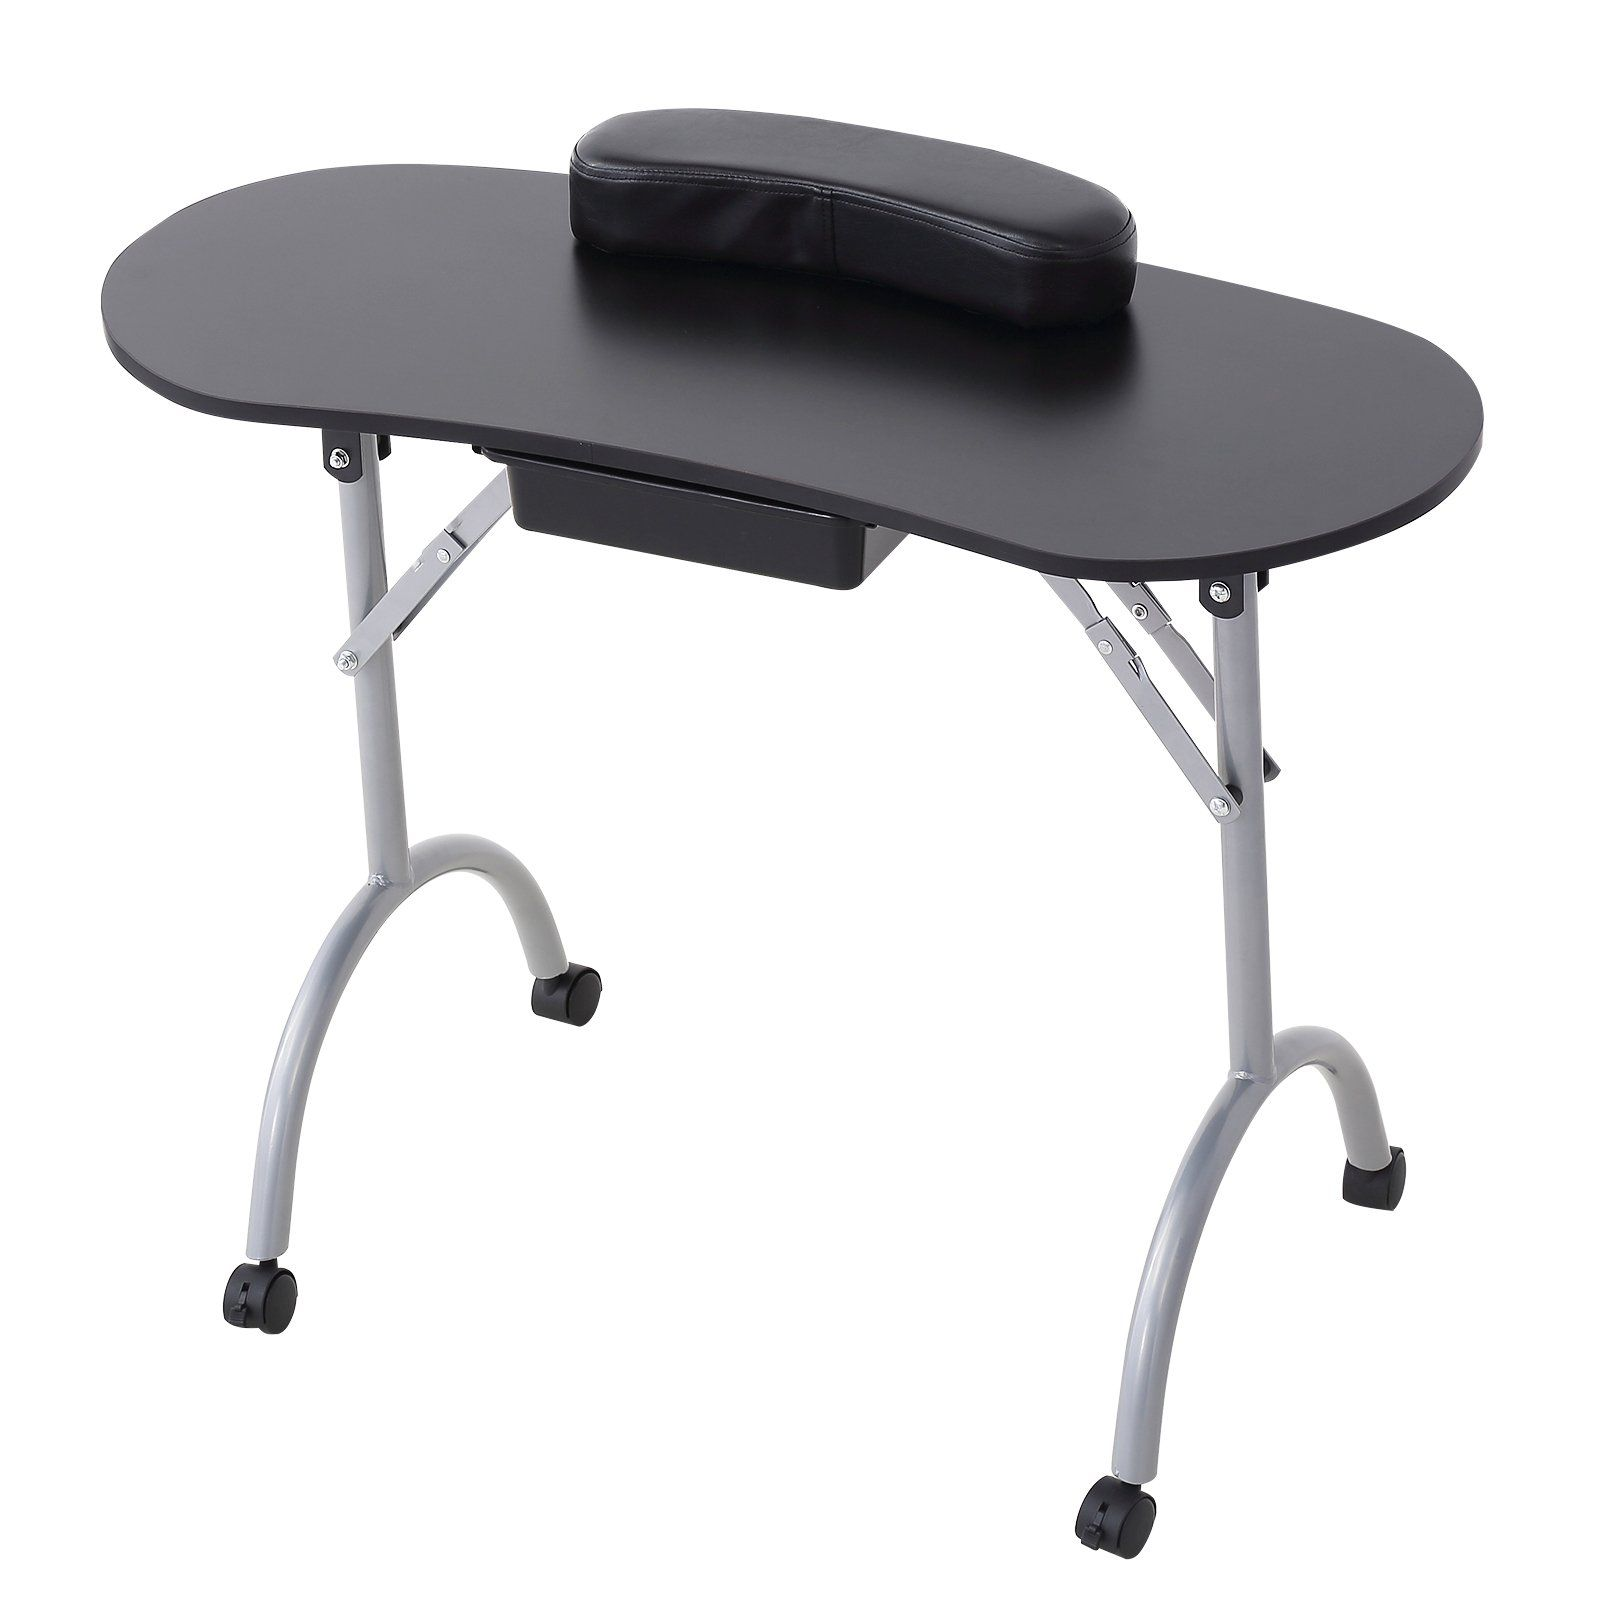 Murtisol Portable Nail Table Foldable Manicure Table